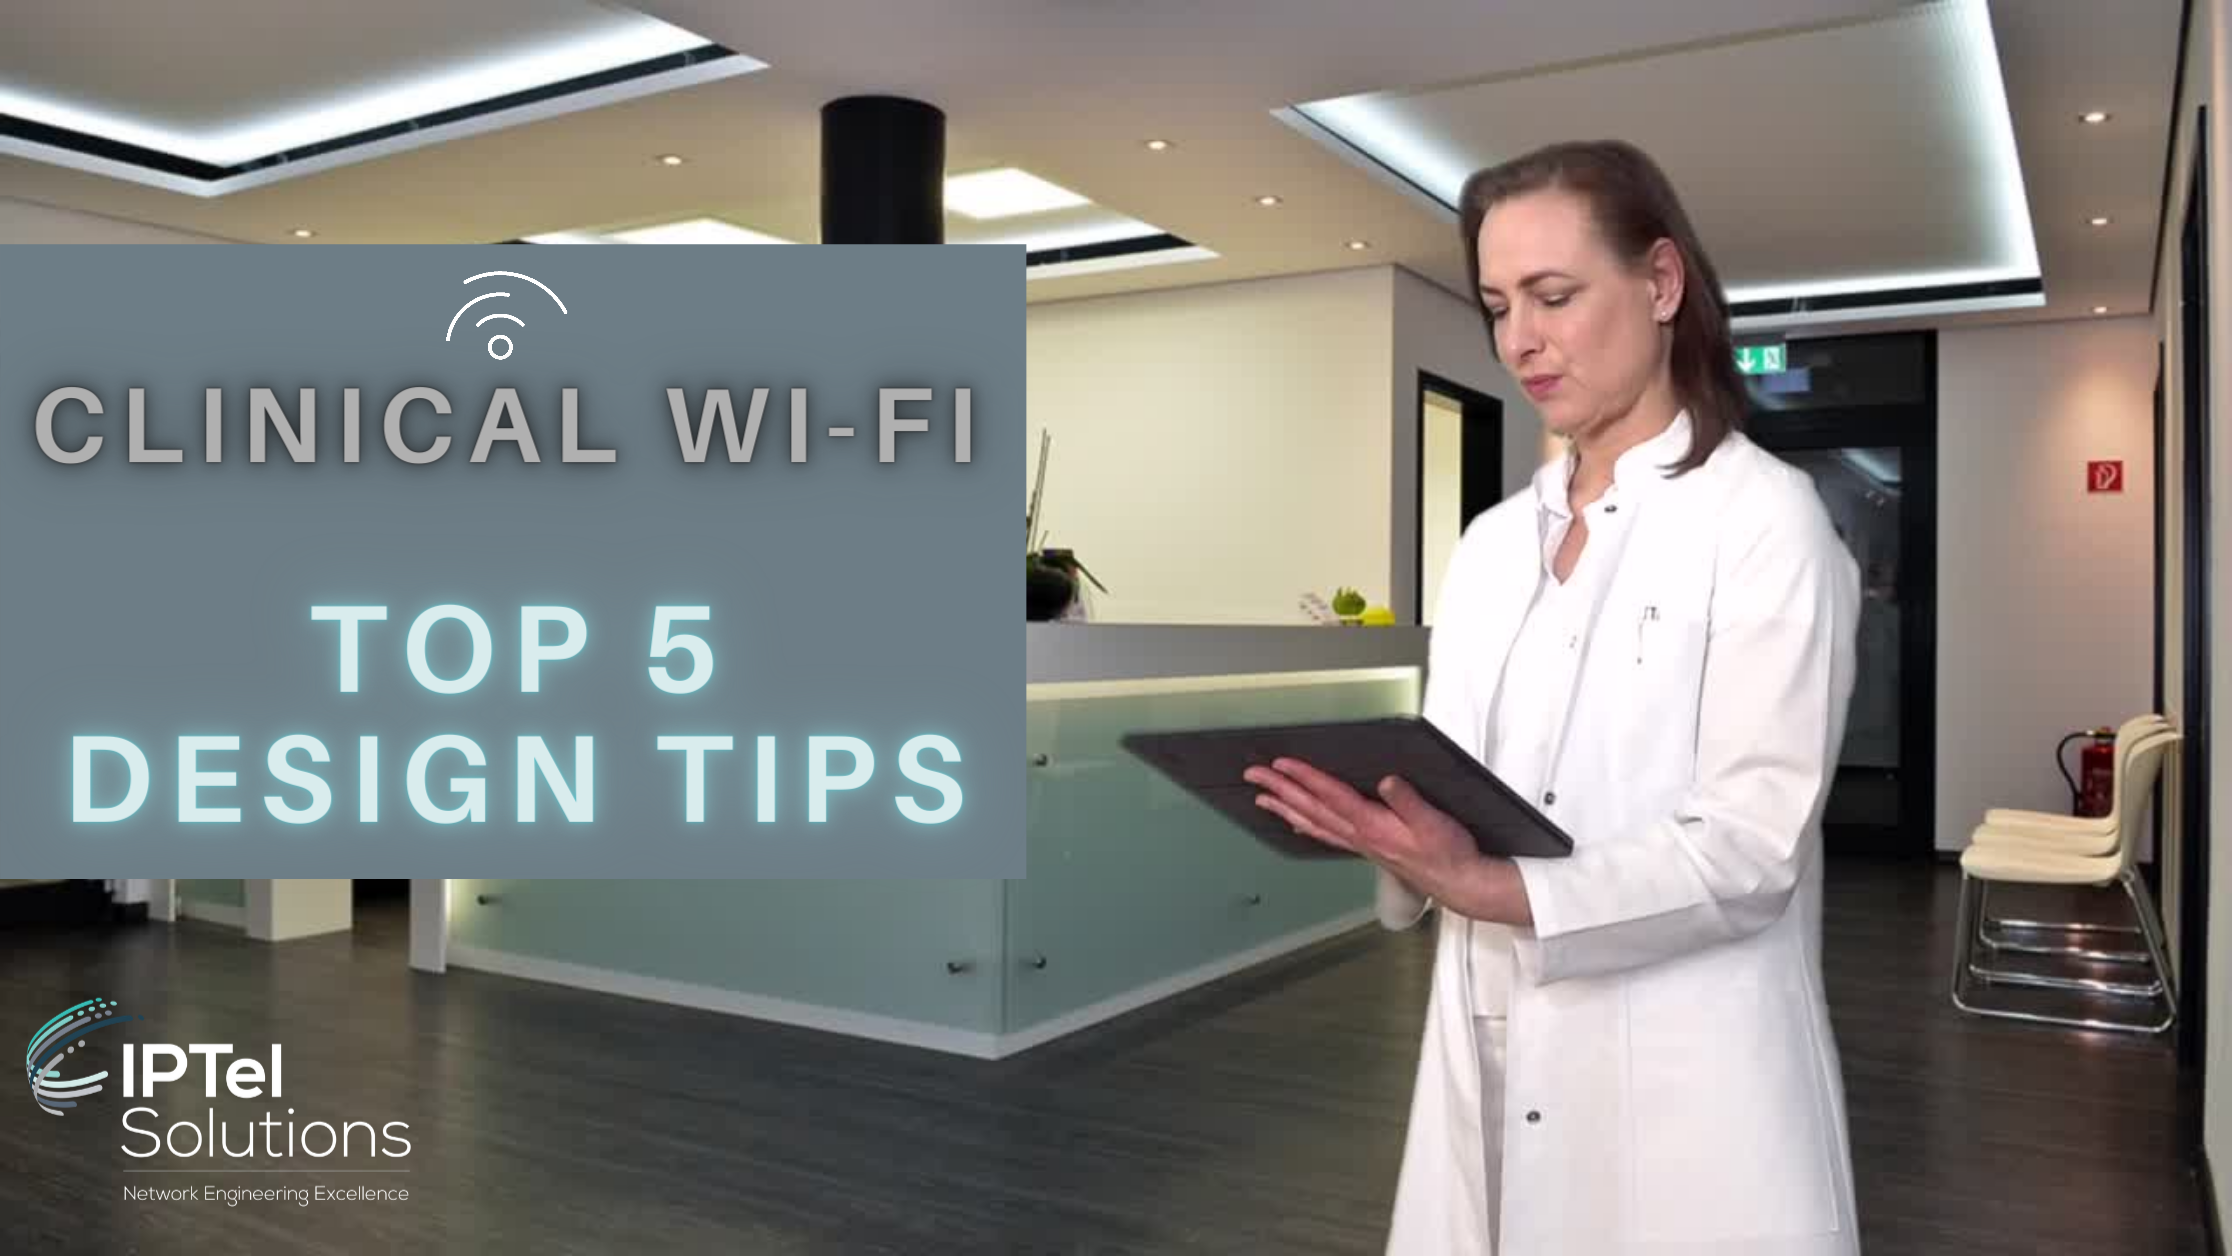 Clinical Wi-Fi Top 5 Design Tips